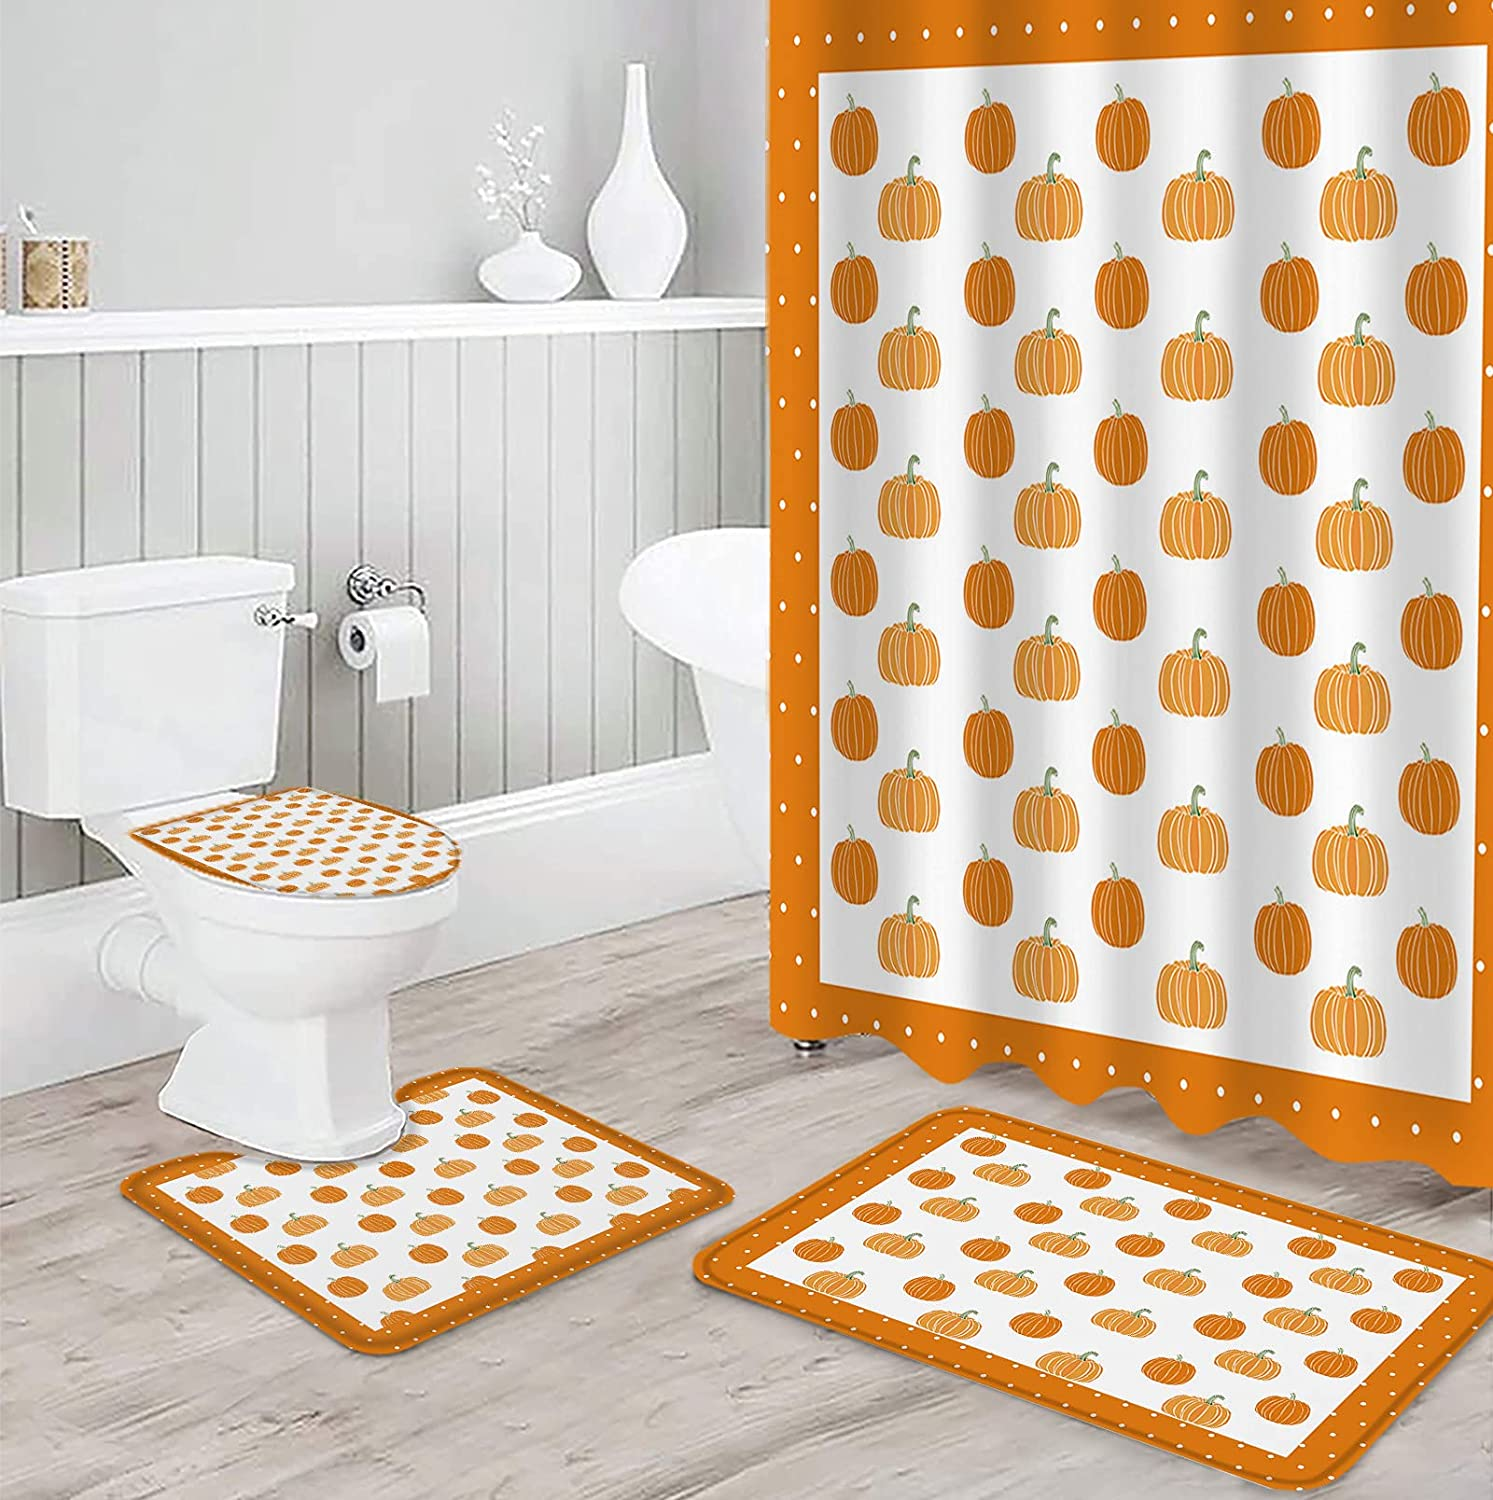 Holiday Shower Curtain Set 4 Piece Non-Slip Ru Bathroom Max 84% OFF with for Raleigh Mall